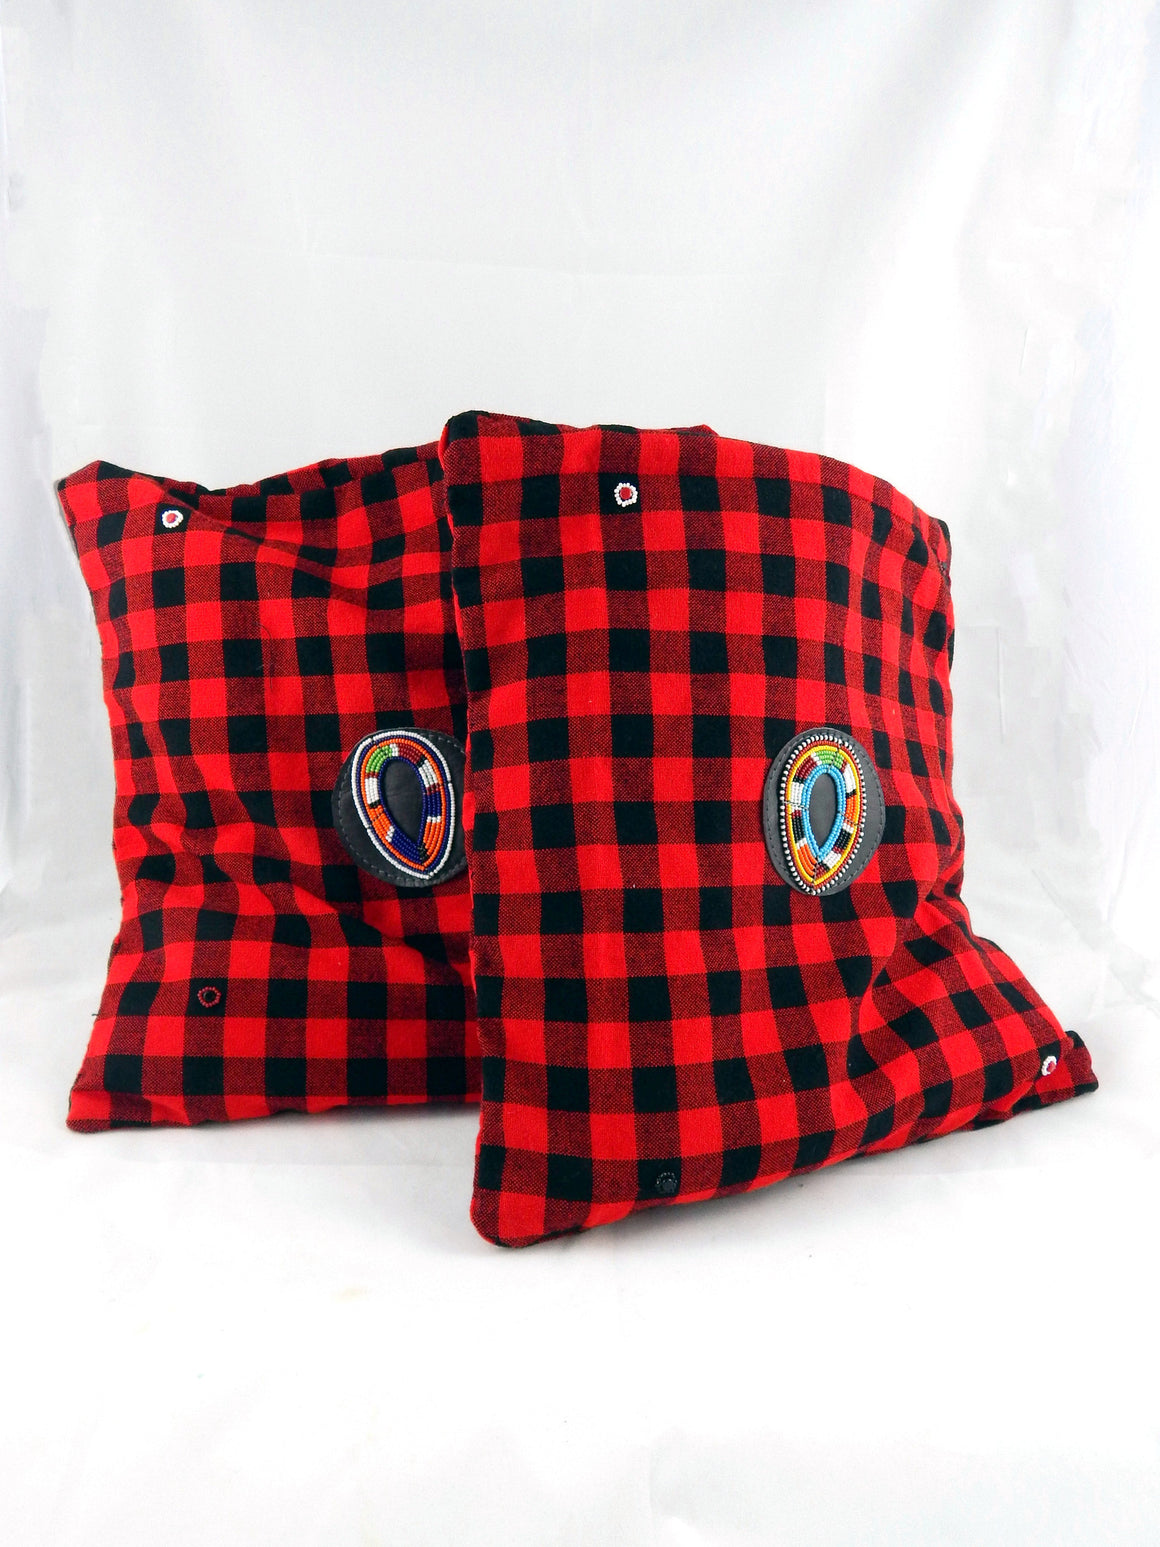 Maasai Shuka Pillow Covers